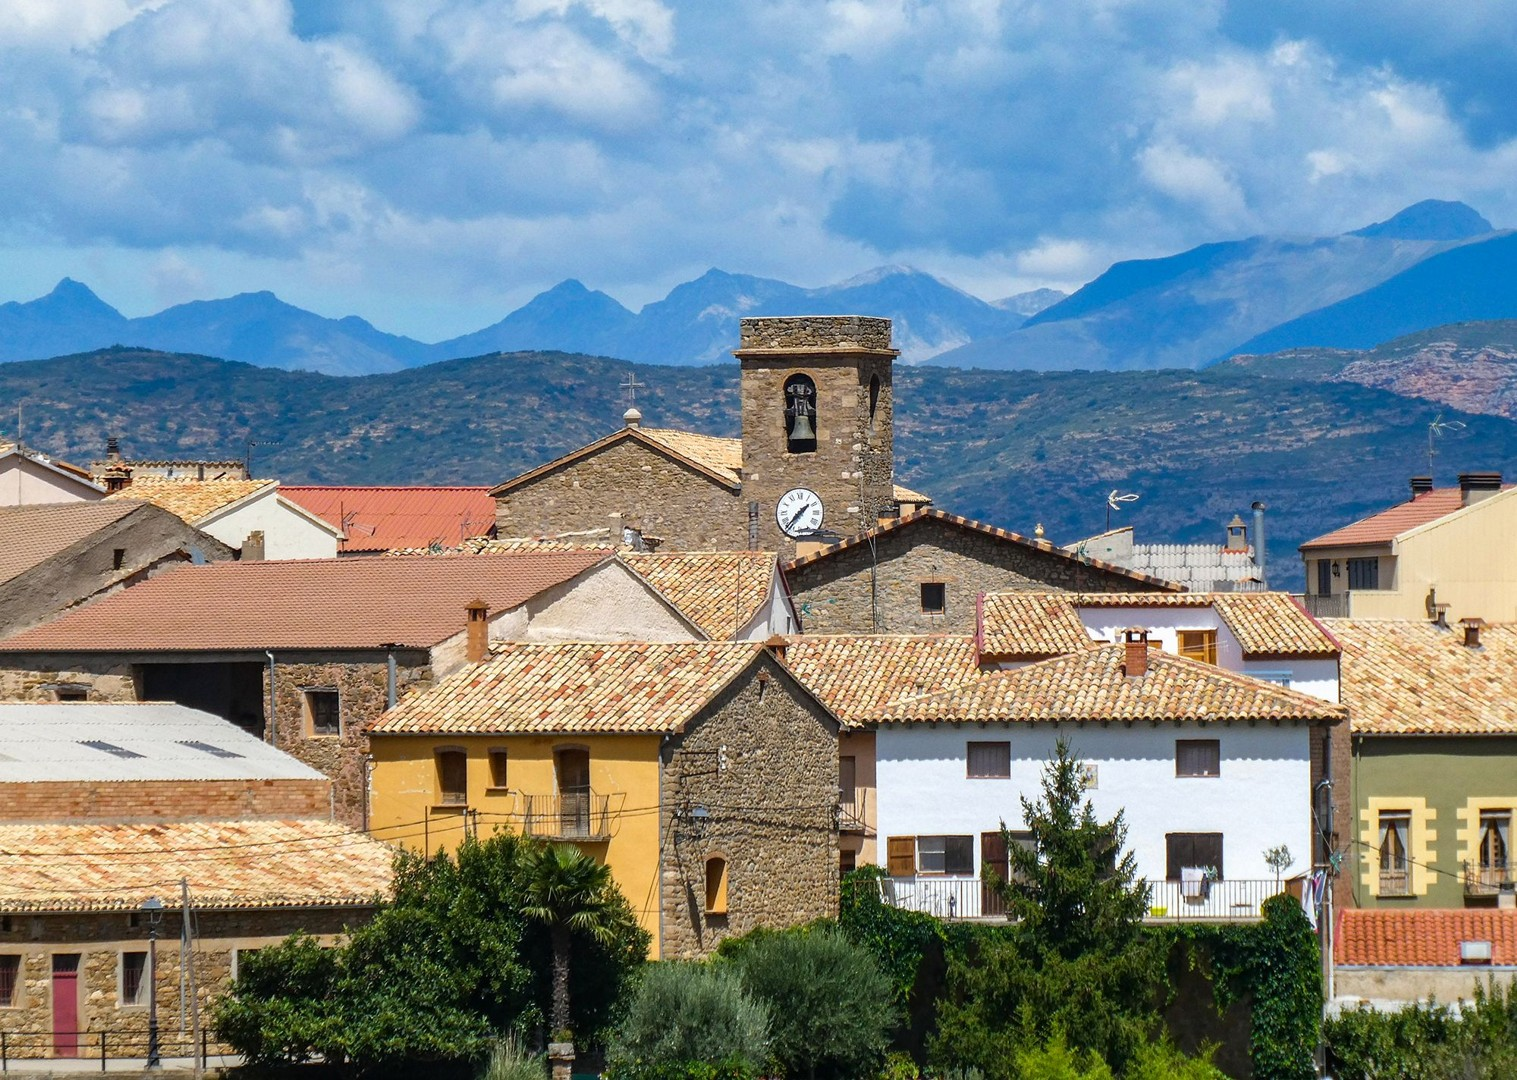 spanish-holiday-guided-road-cycling-bilbao-to-barcelona-northern-spain.jpg - Northern Spain - Bilbao to Barcelona - Guided Road Cycling Holiday - Road Cycling